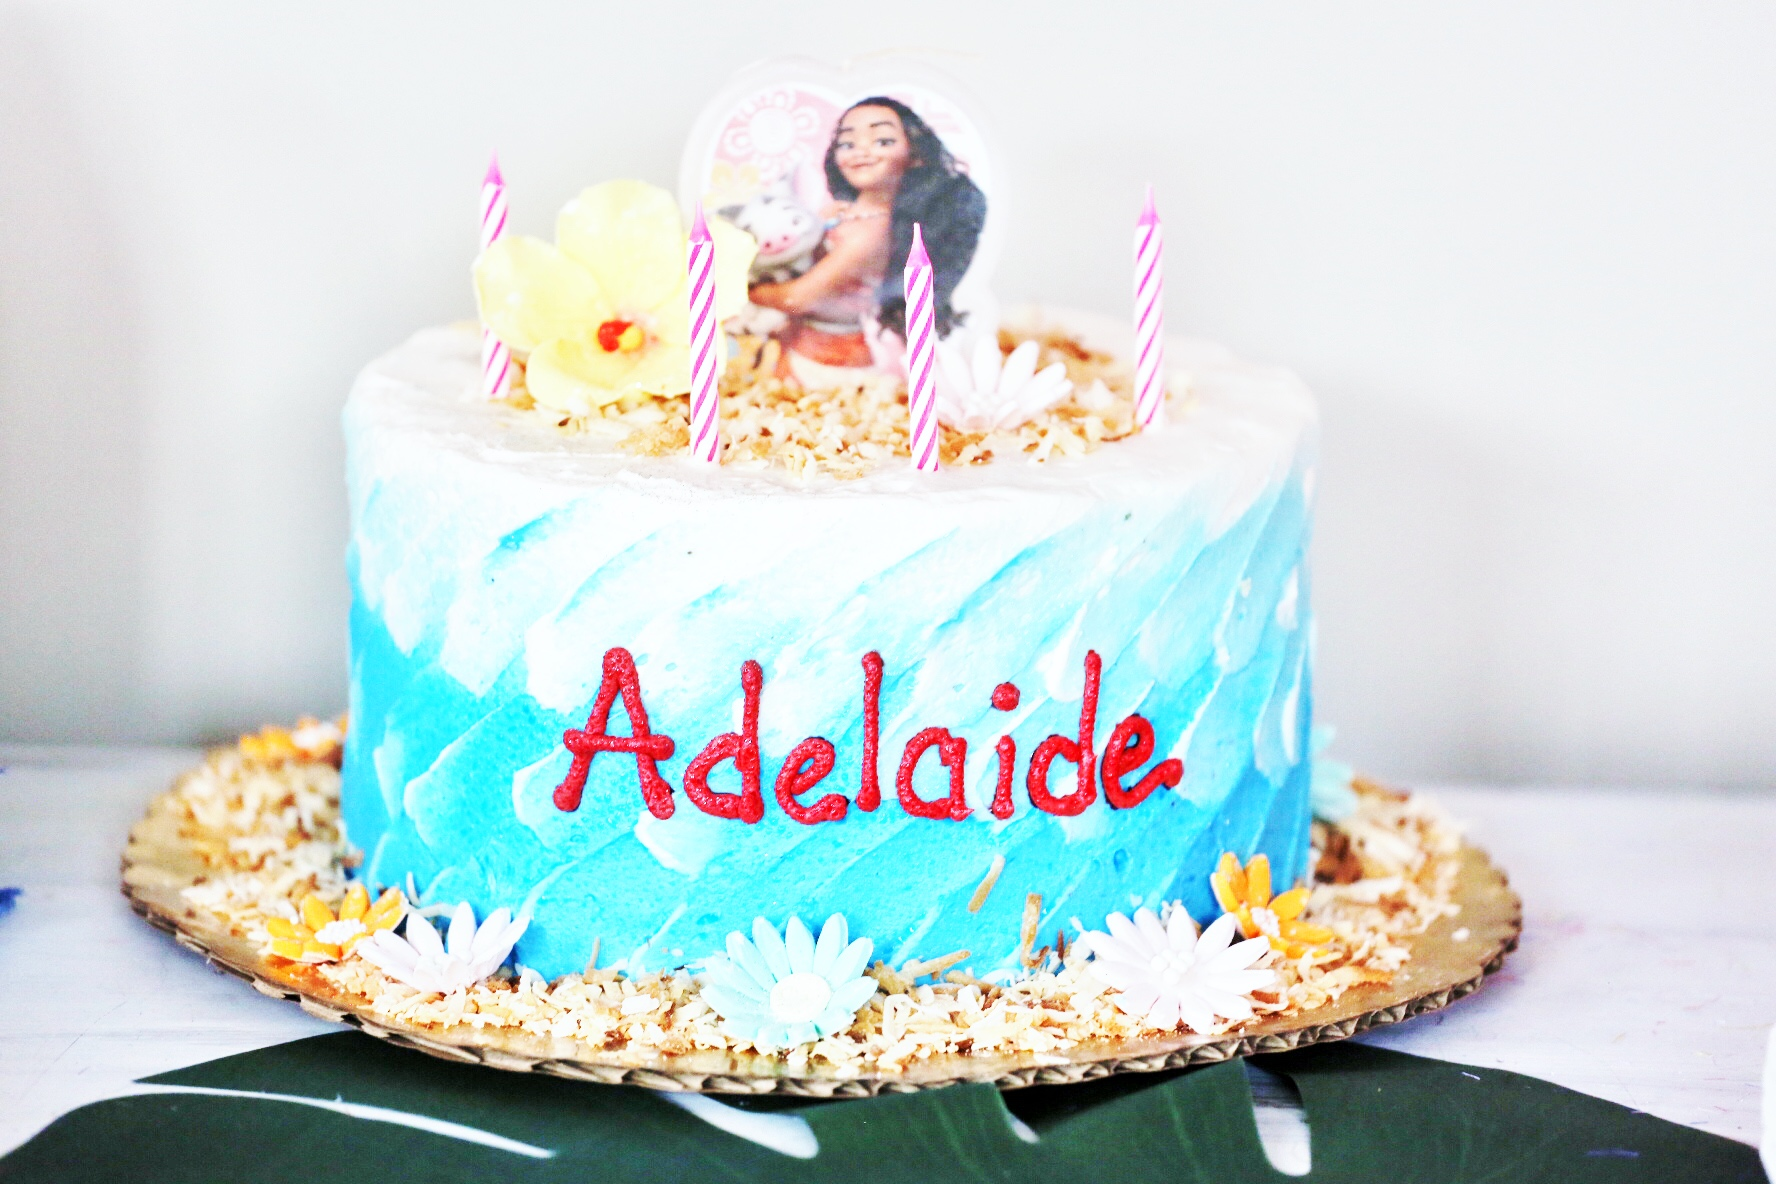 Stupendous Adelaides Moana Birthday Party Funny Birthday Cards Online Barepcheapnameinfo